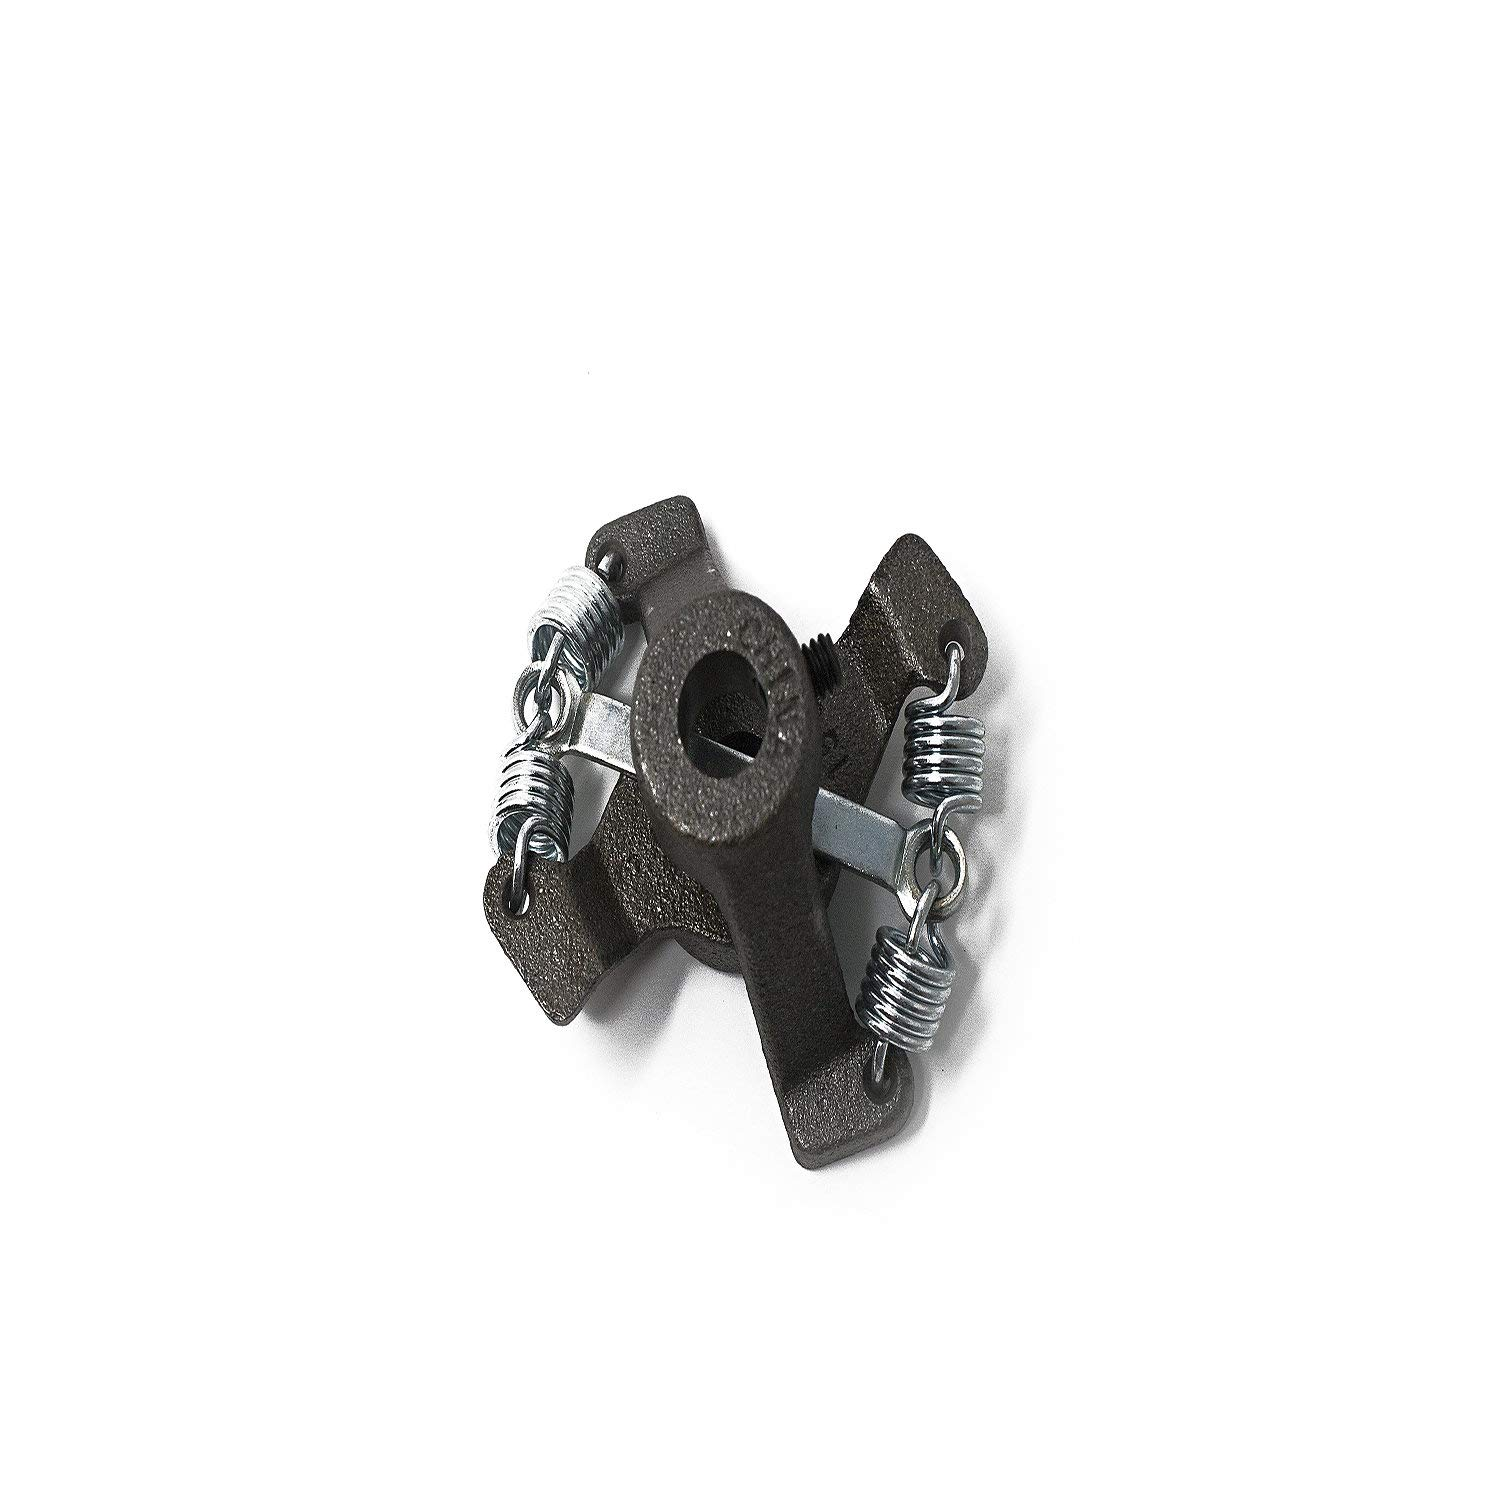 MM Supplies Spring Pump Coupler - Cast Iron - Series 100, HV, PR, 1, 1-1/4, 1-1/2 and 2 1 1-1/4 1-1/2 and 2